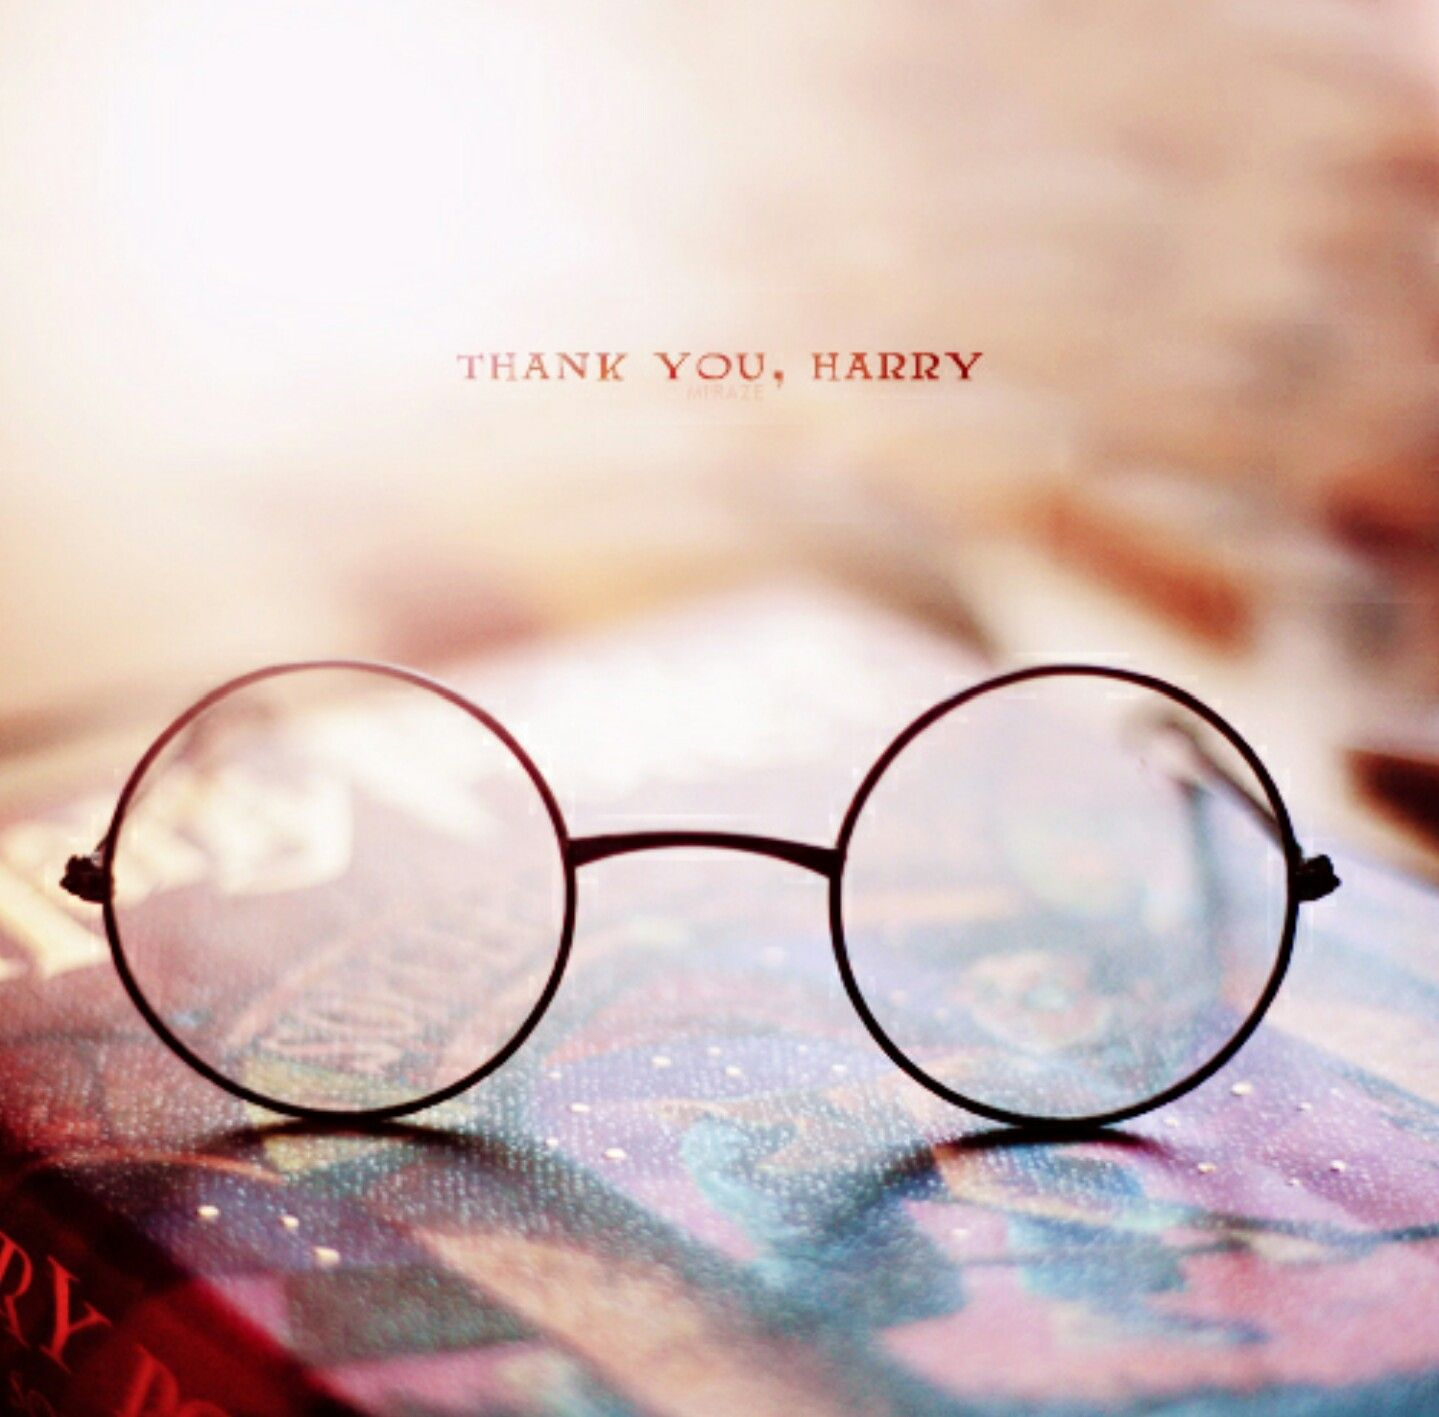 Thank you, Harry. #harrypotter #Hp